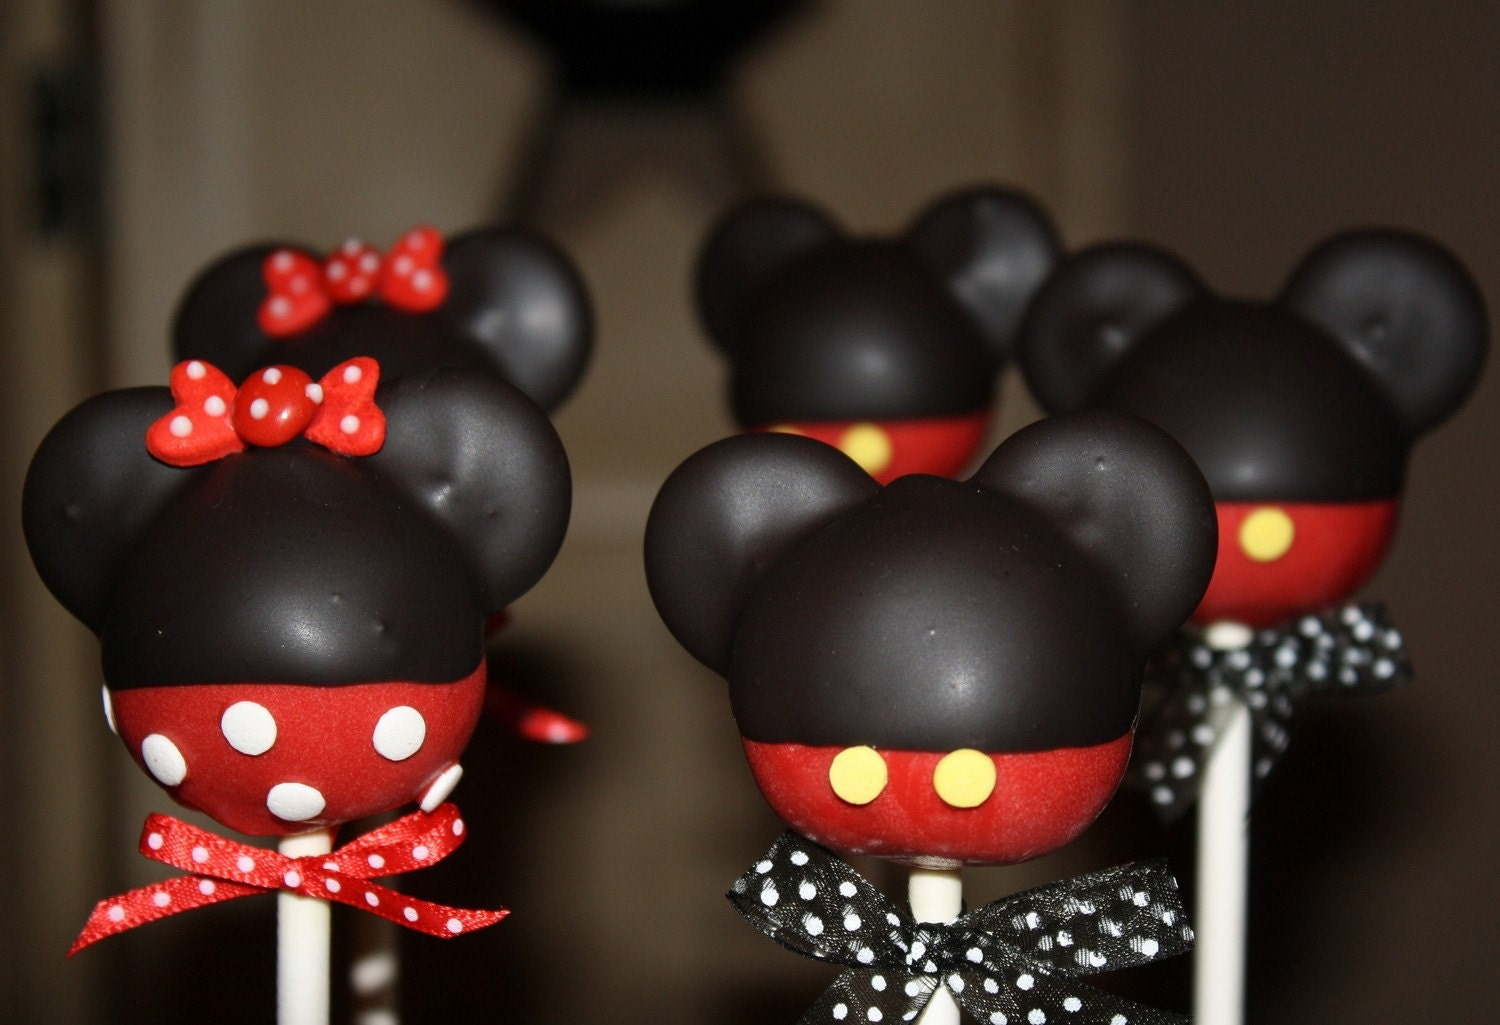 Mom's Killer Cakes & Cookies ORIGINAL DESIGN Pants and Skirt Mickey and Minnie Mouse Inspired Cake Pops